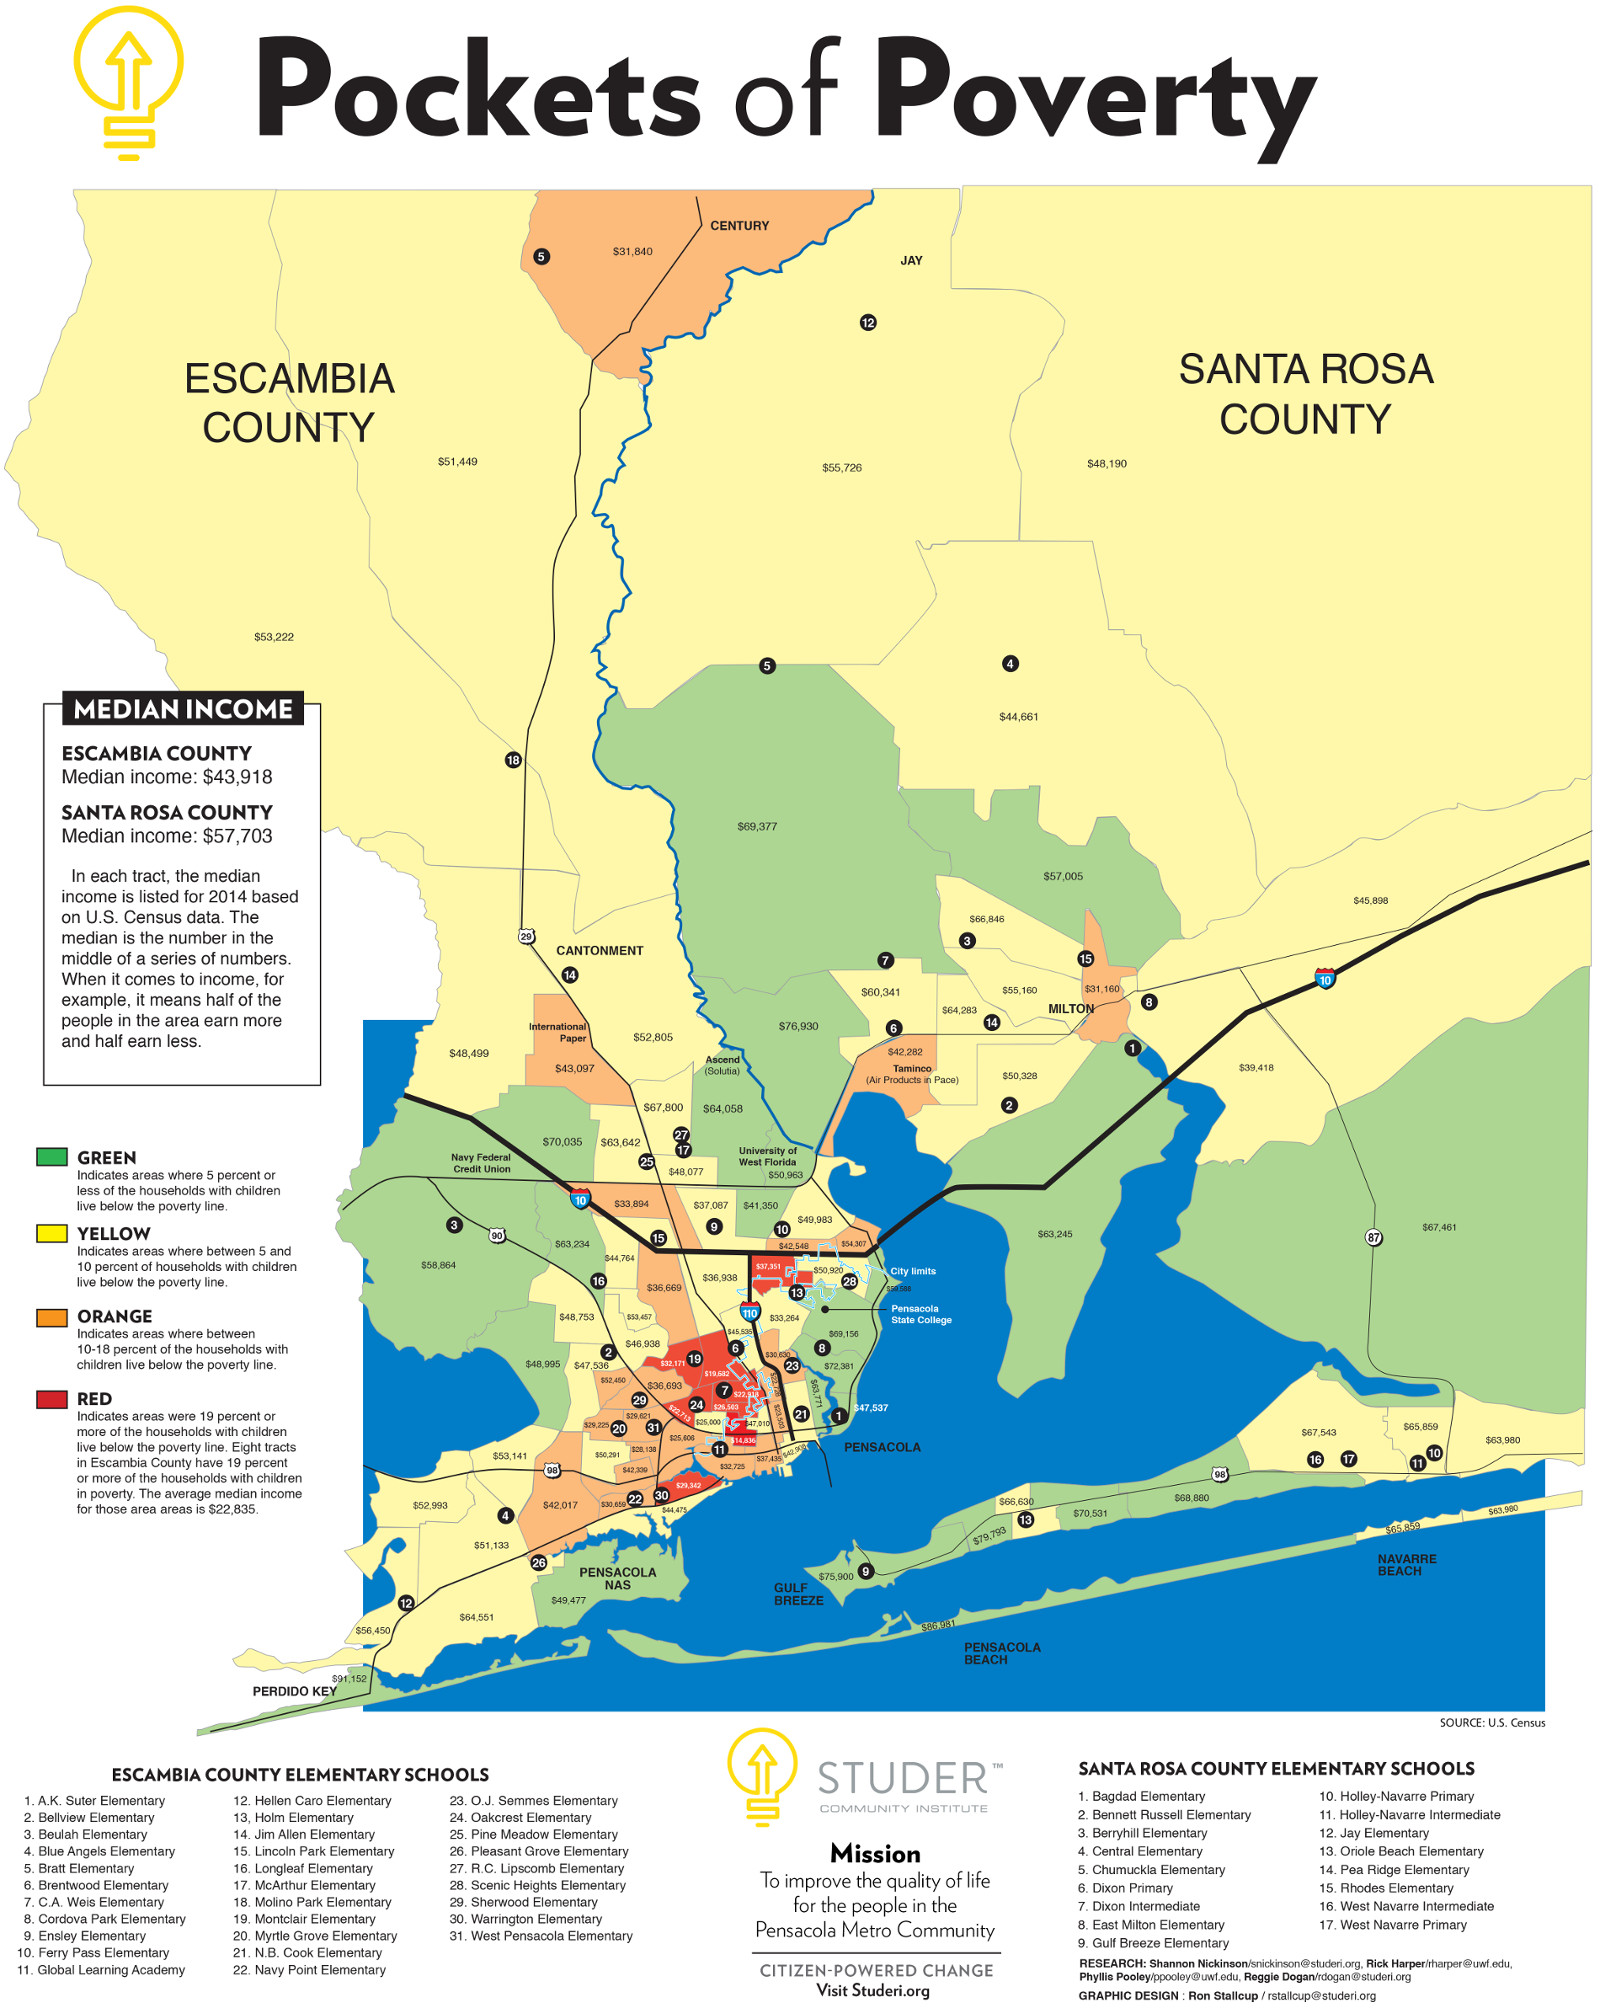 Pockets of Poverty | Studer Community Insute on map of downtown little rock ar, tourist map of pensacola fl, map of downtown paterson nj, map of pensacola and destin florida, map of downtown roseville ca, google map of pensacola fl, map of downtown plano tx, map of beaches fl, map of downtown traverse city mi, airport pensacola fl, map of downtown redwood city ca, map of downtown rockville md, map of pensacola christian college, streets in pensacola fl, map of downtown las vegas nv, map of downtown palm springs ca, map of downtown new bern nc, map of downtown santa barbara ca, road map of pensacola fl, map of downtown new orleans la,